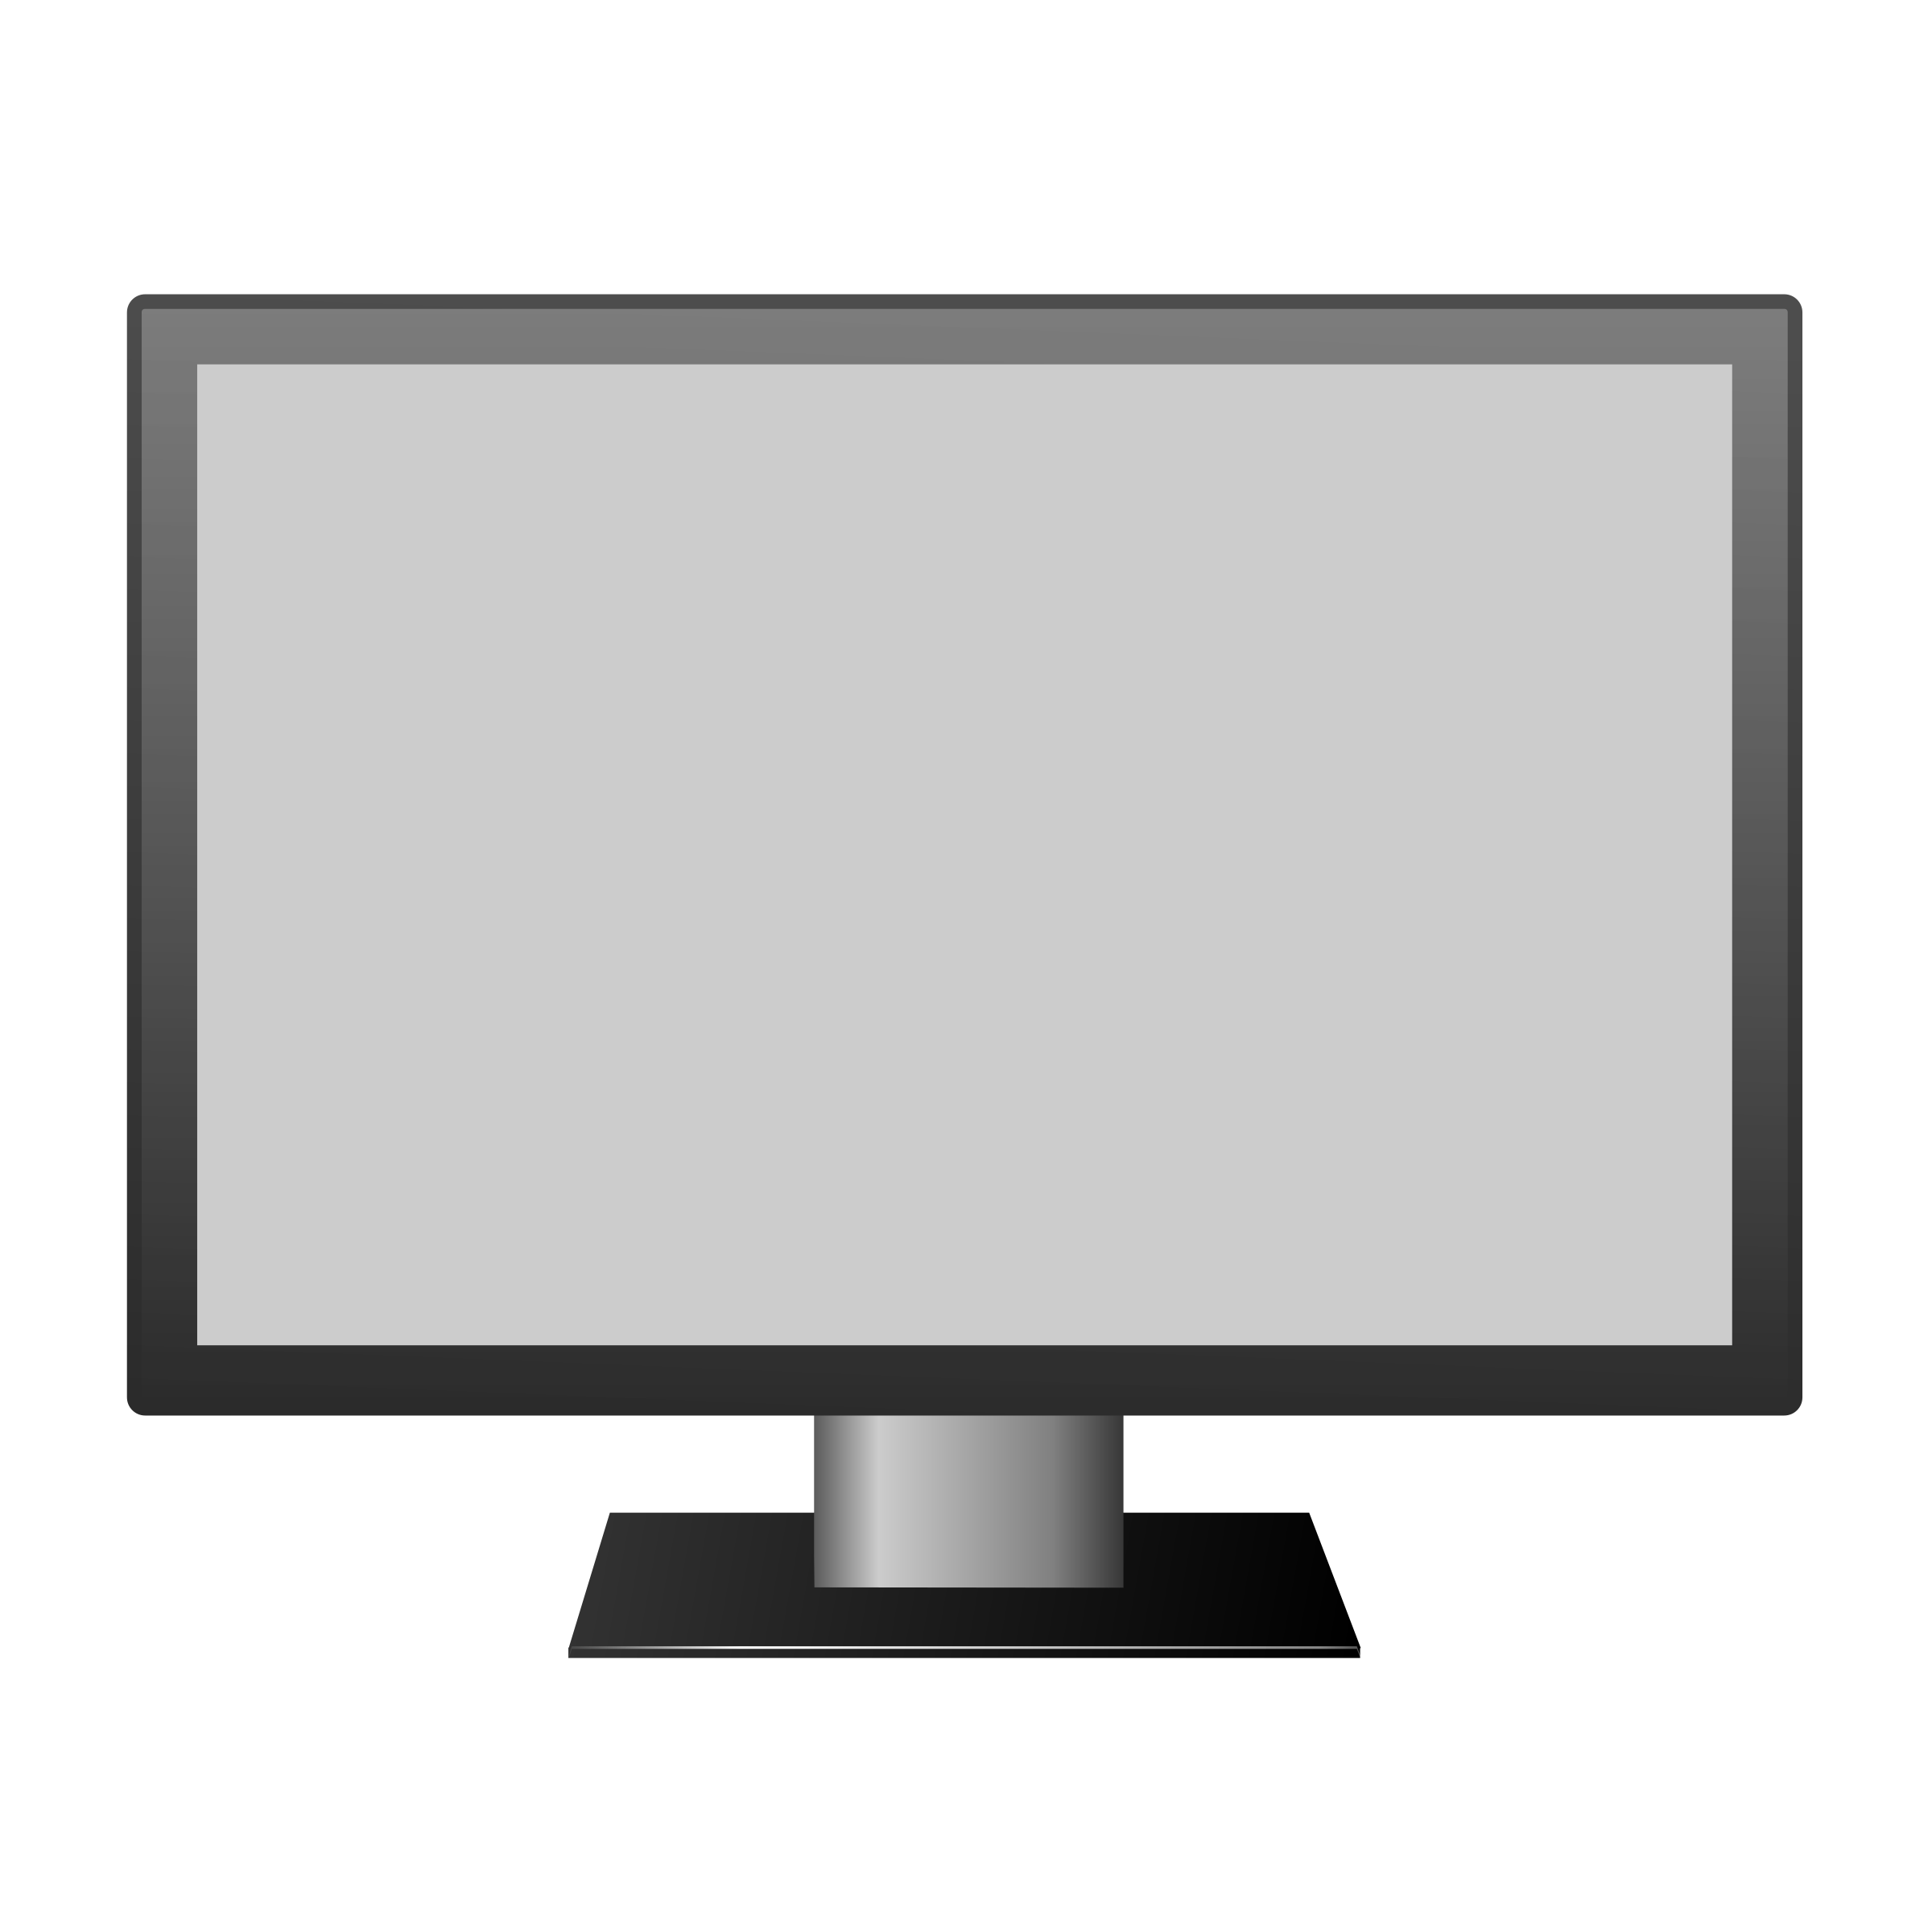 Icon big image png. Clipart tv hd tv